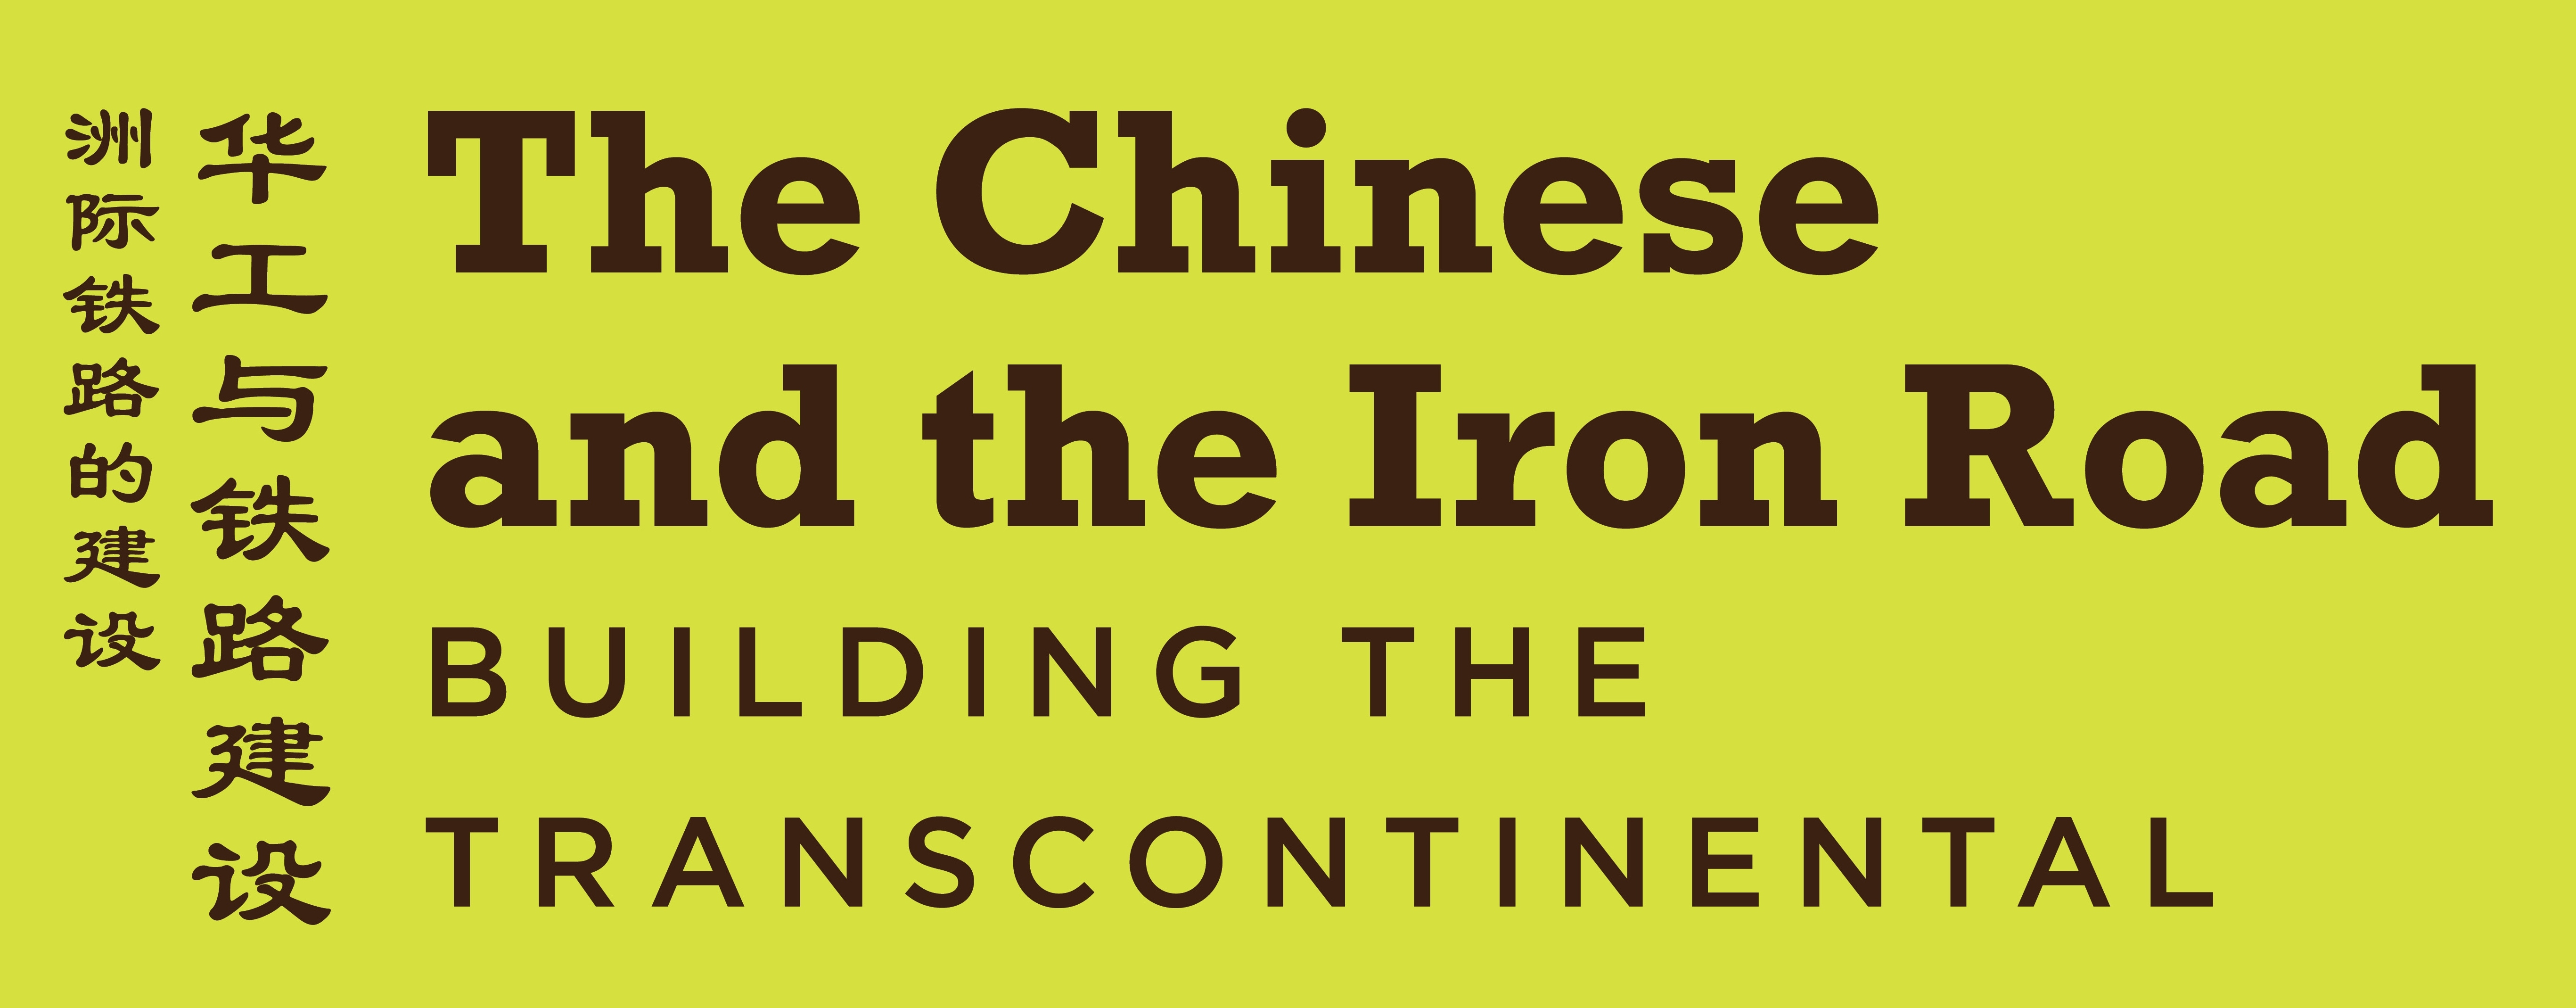 Chinese and the Iron Road Flyer Logo